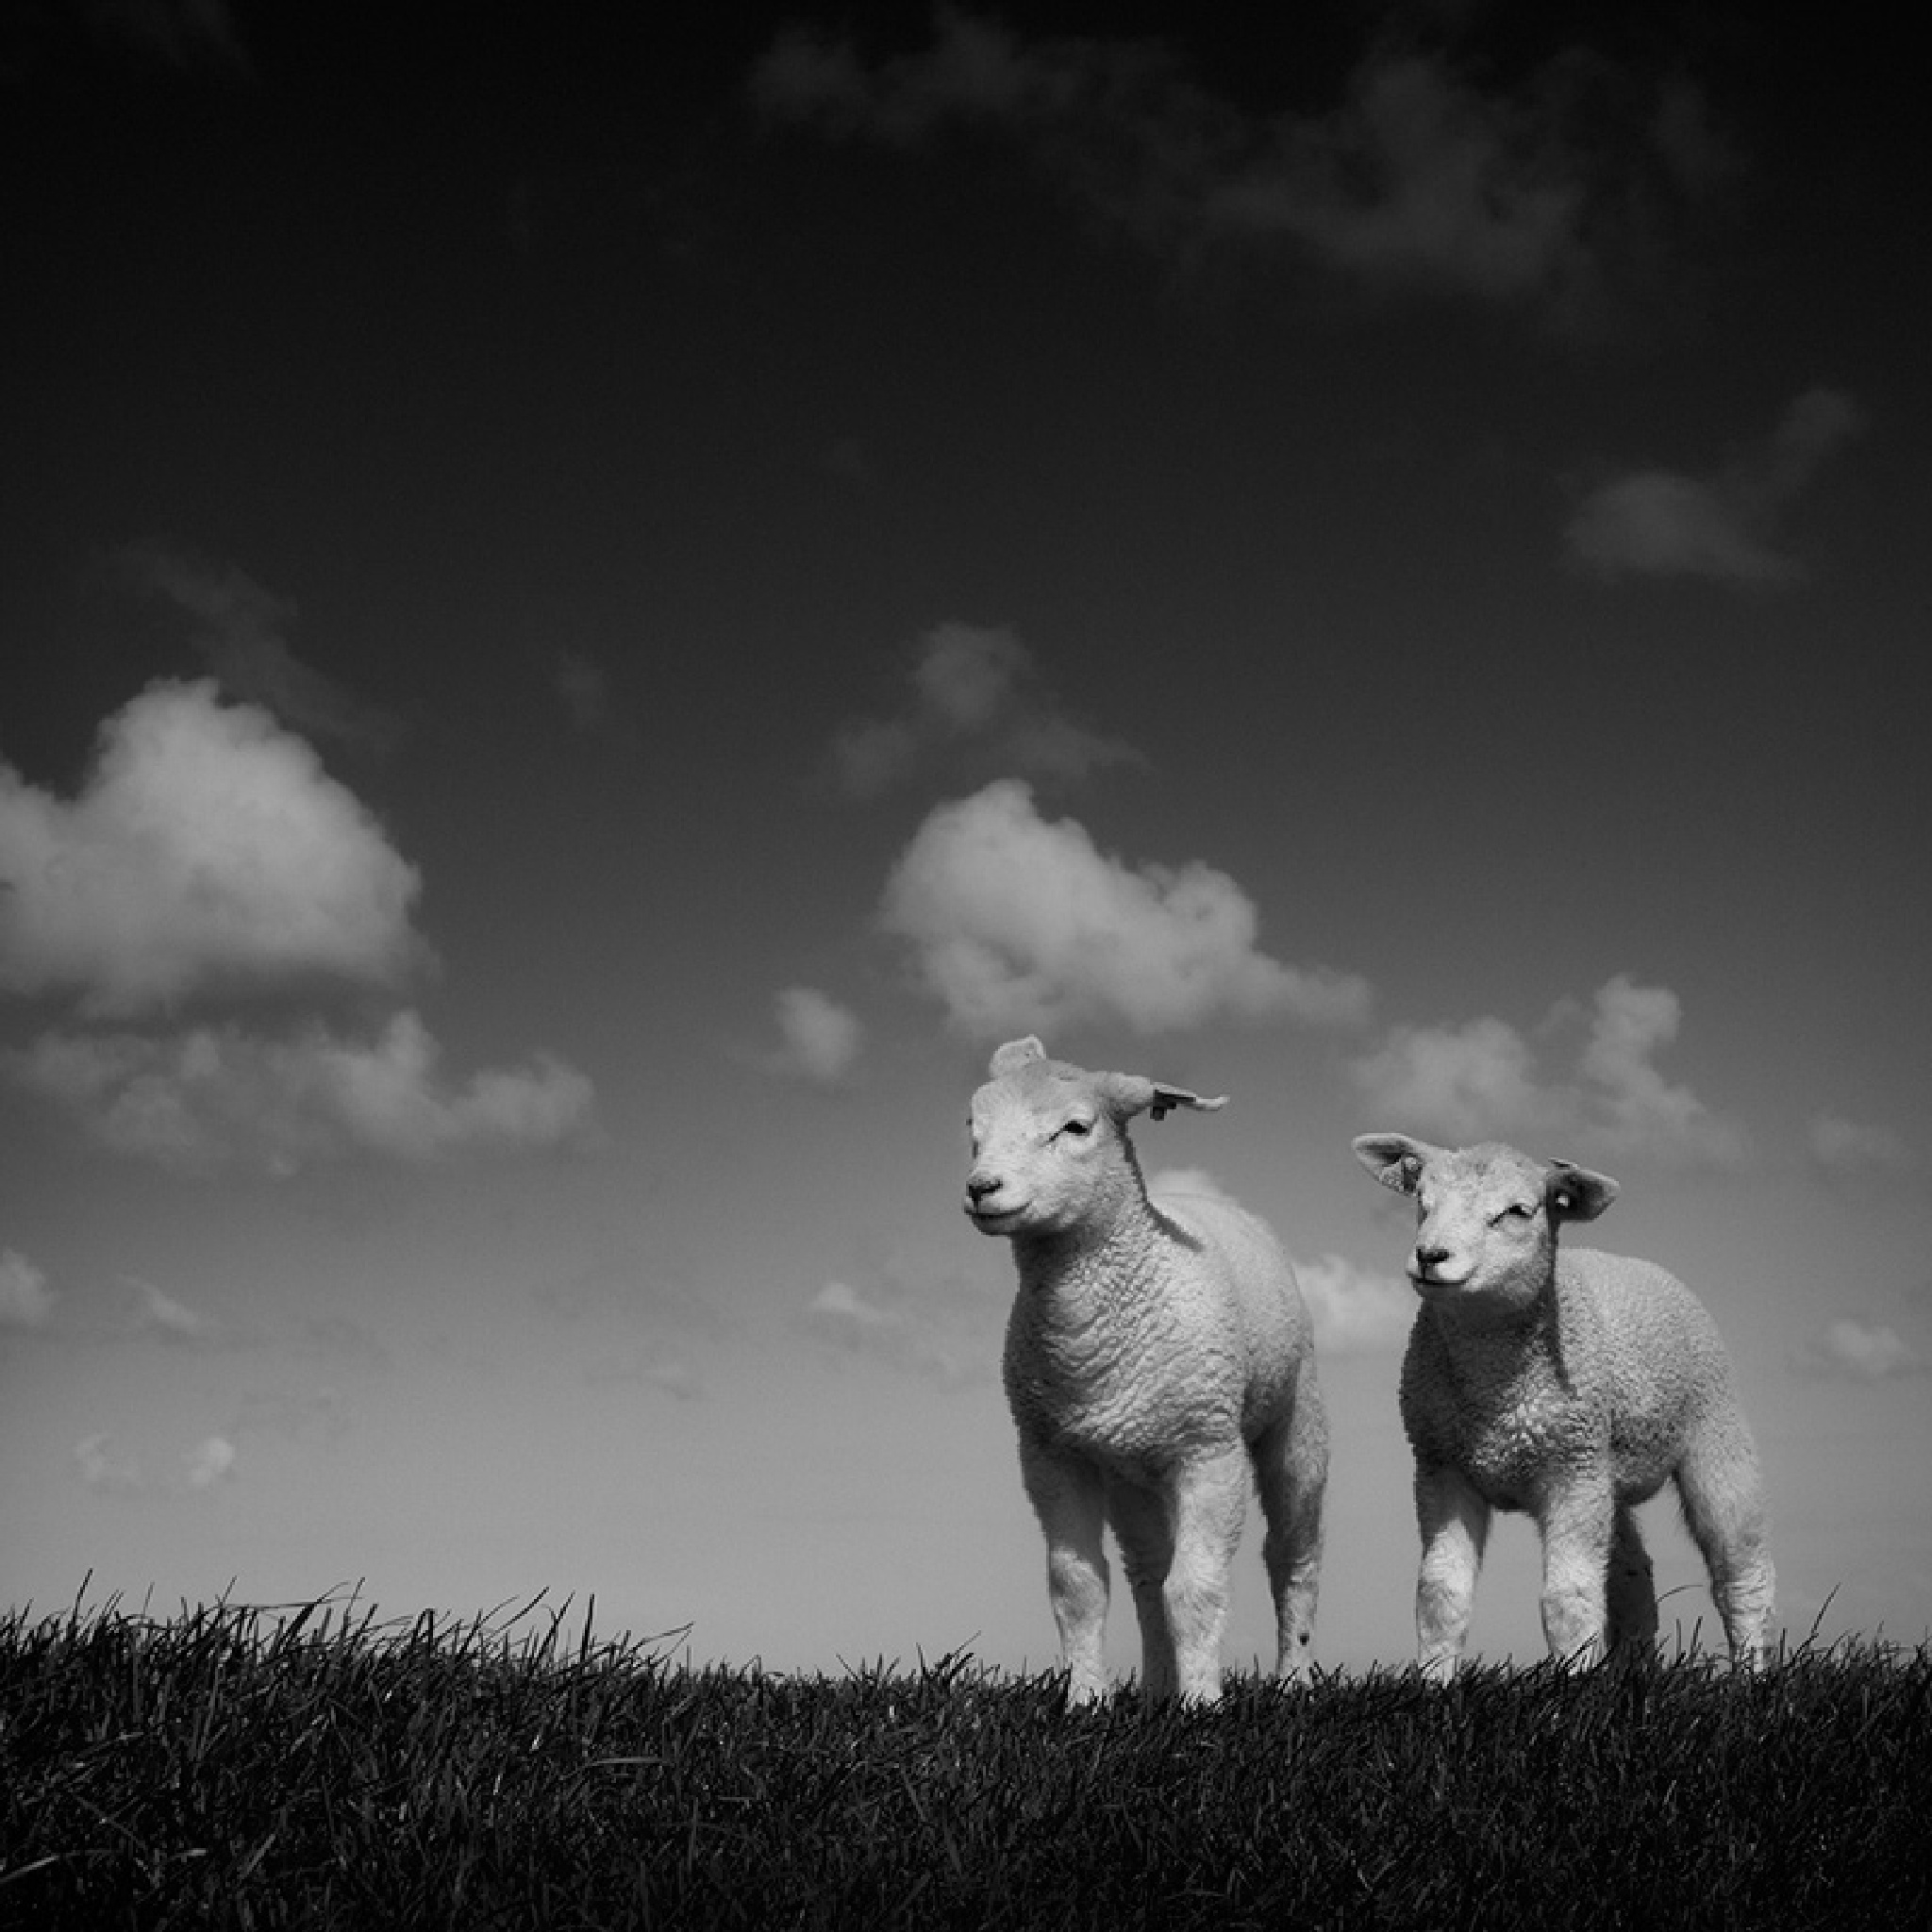 TWIN by RuudPeters